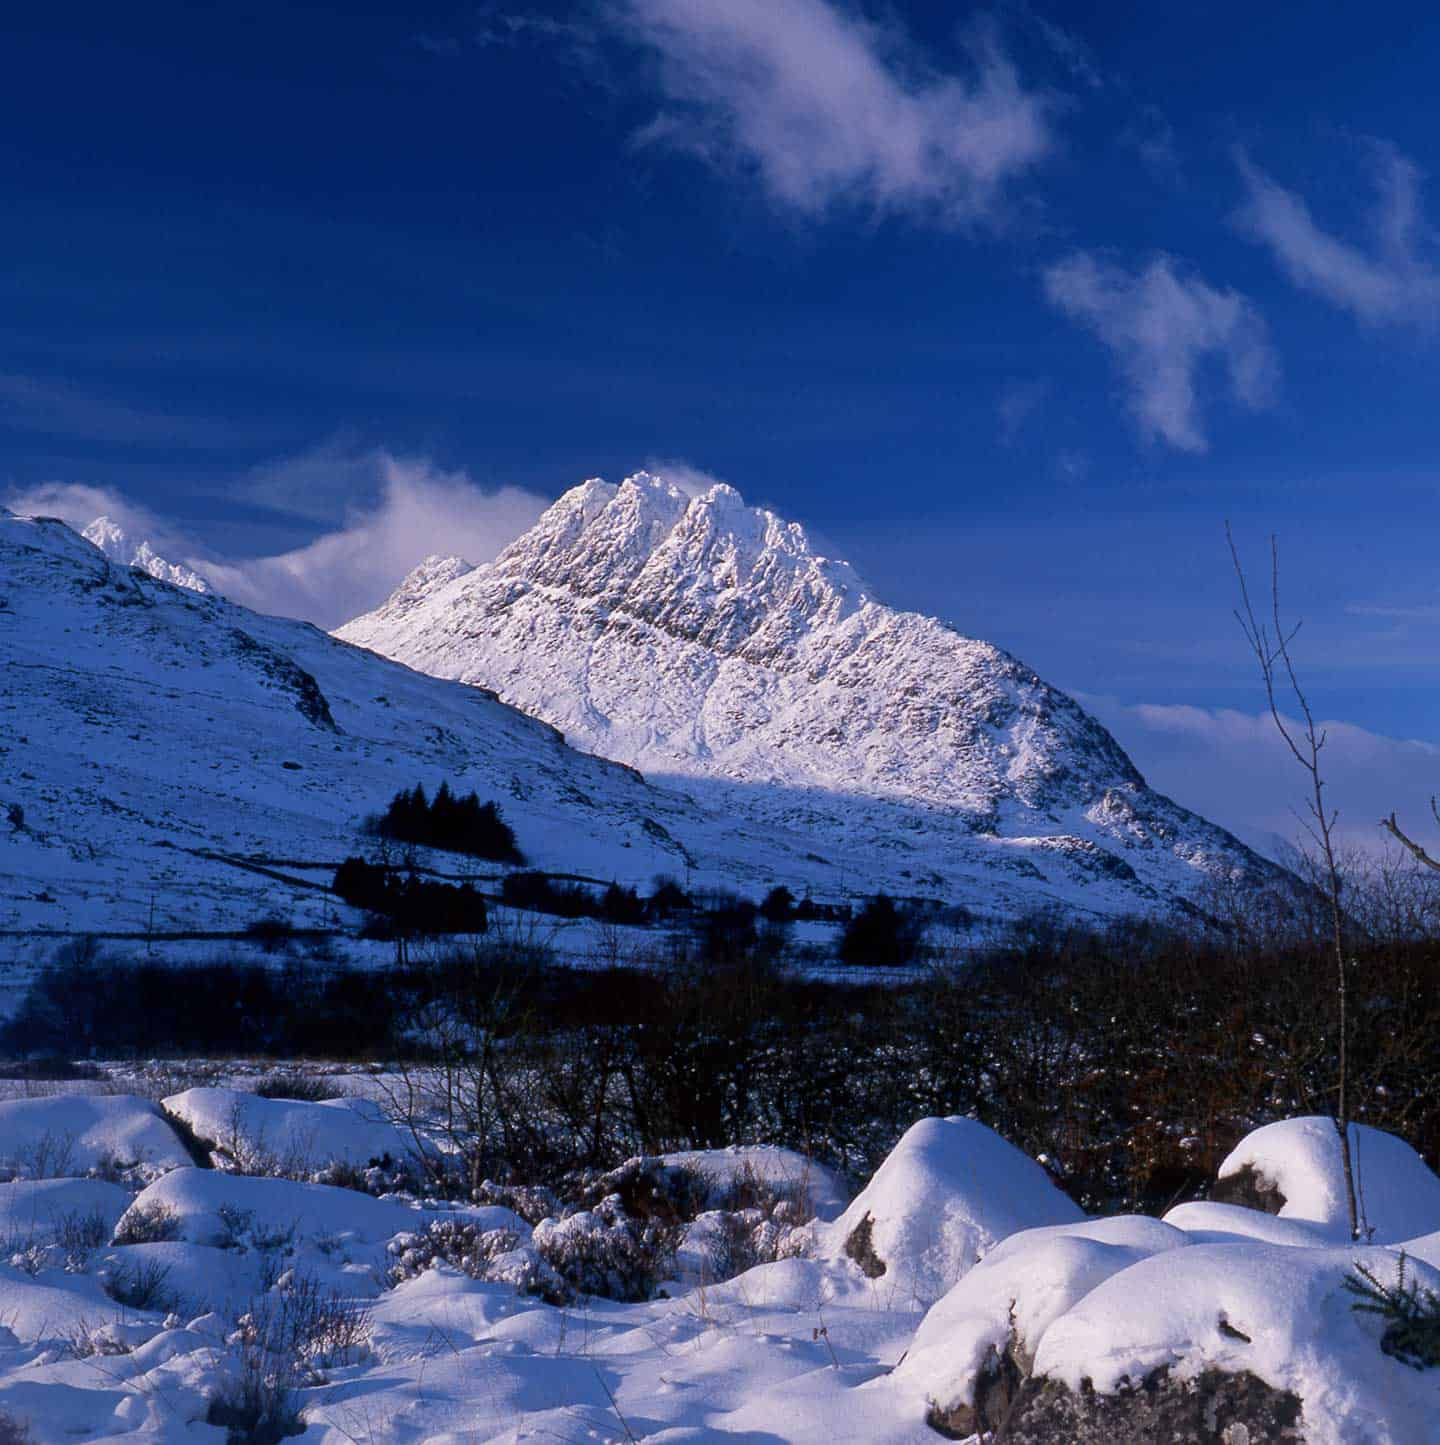 Image of Tryfan a mountain in Snowdonia, North Wales